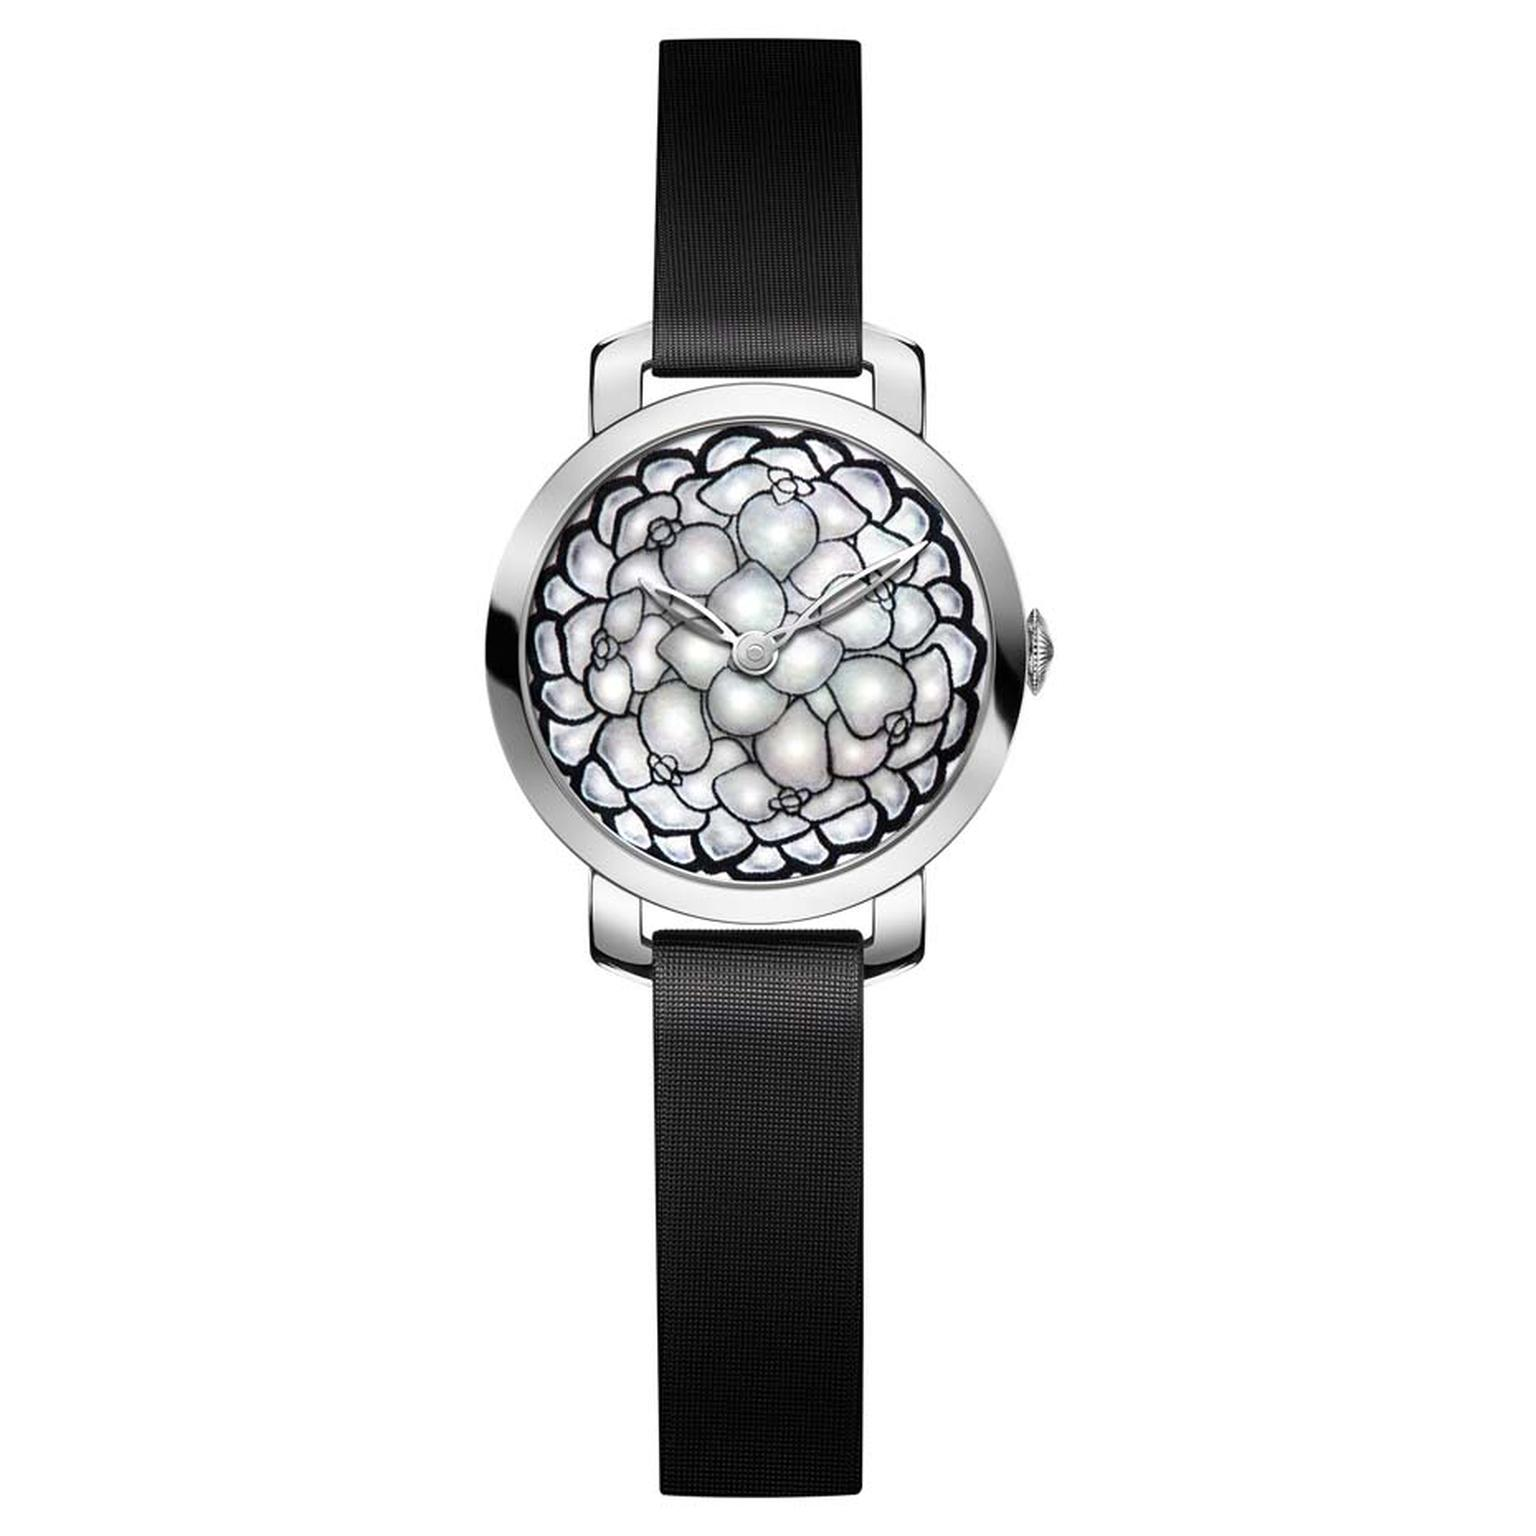 Chaumet Hortensia collection watch featuring a rhodium-plated white gold case